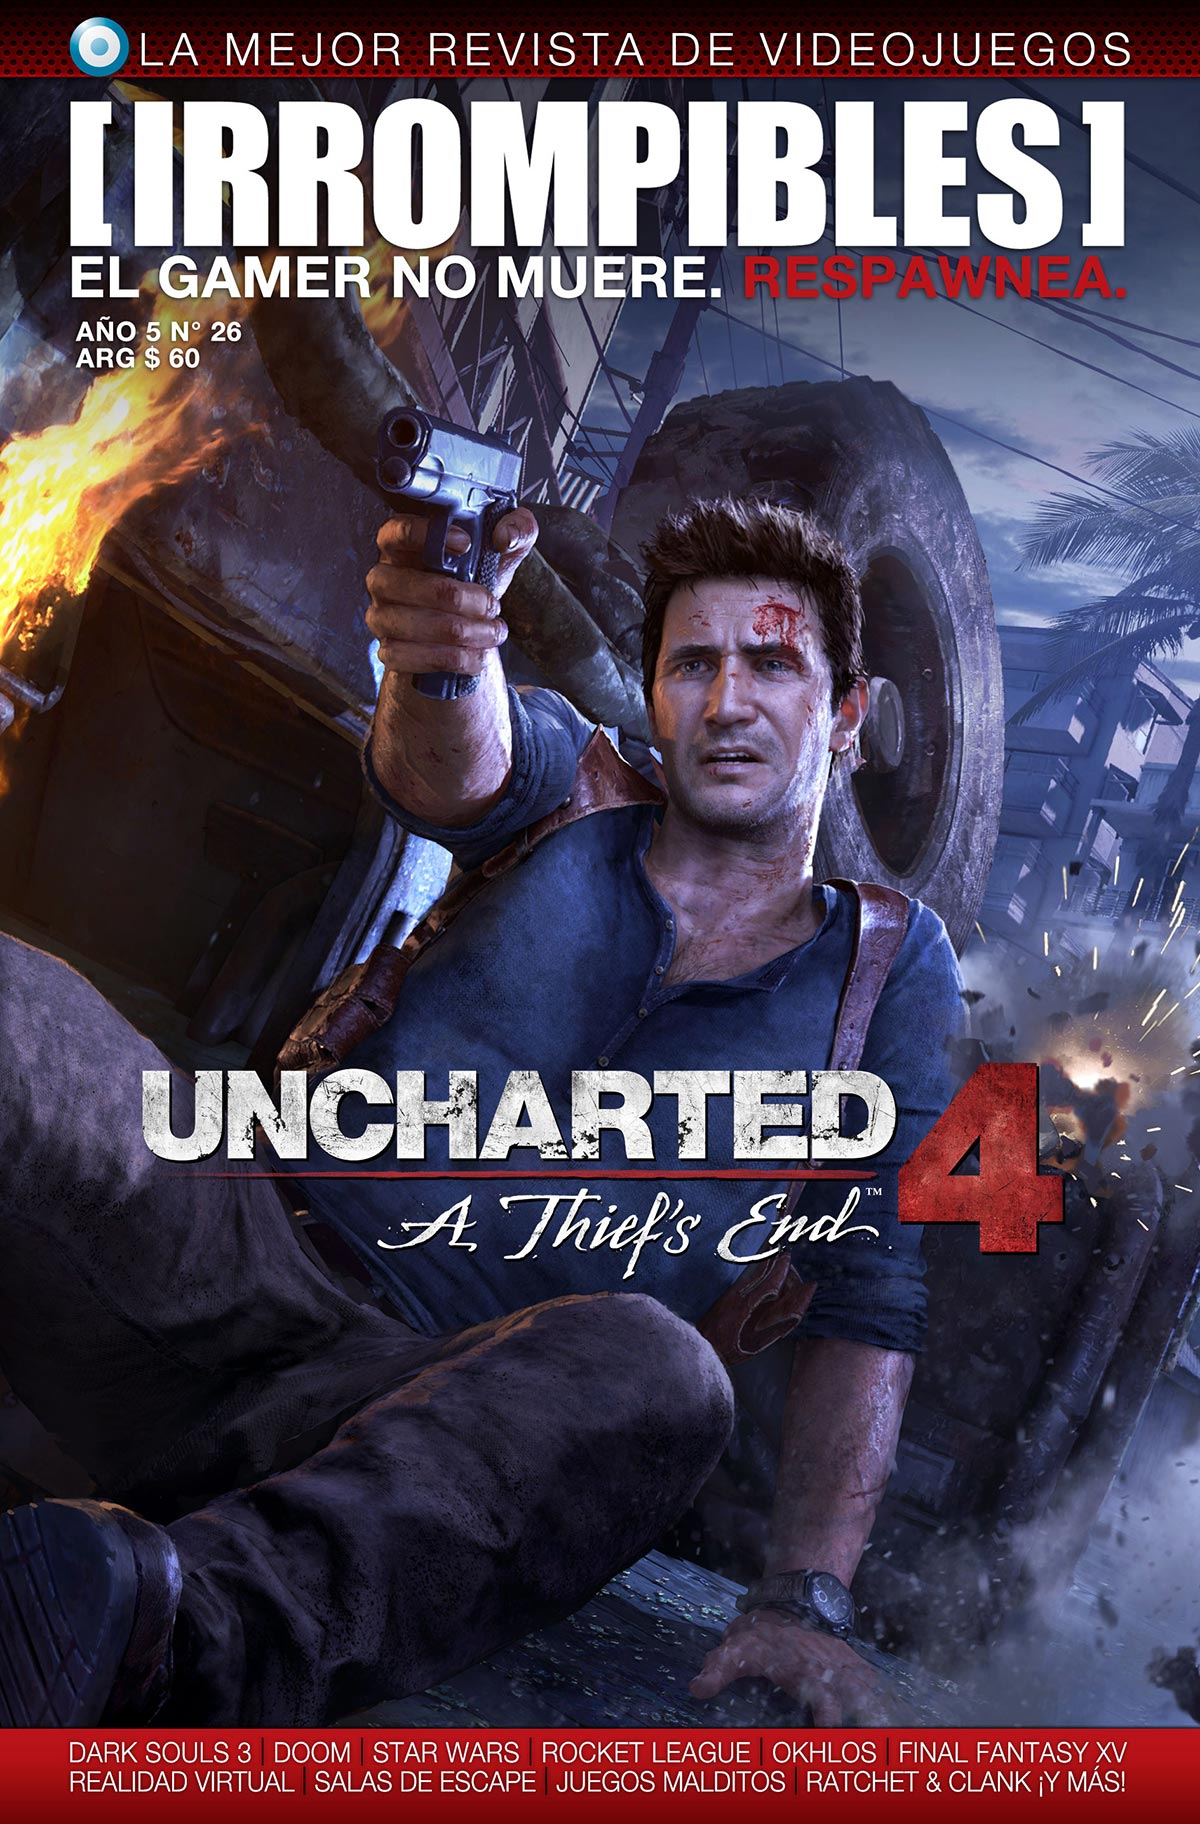 Revista irrompibles 26: Uncharted 4: A Thief's End